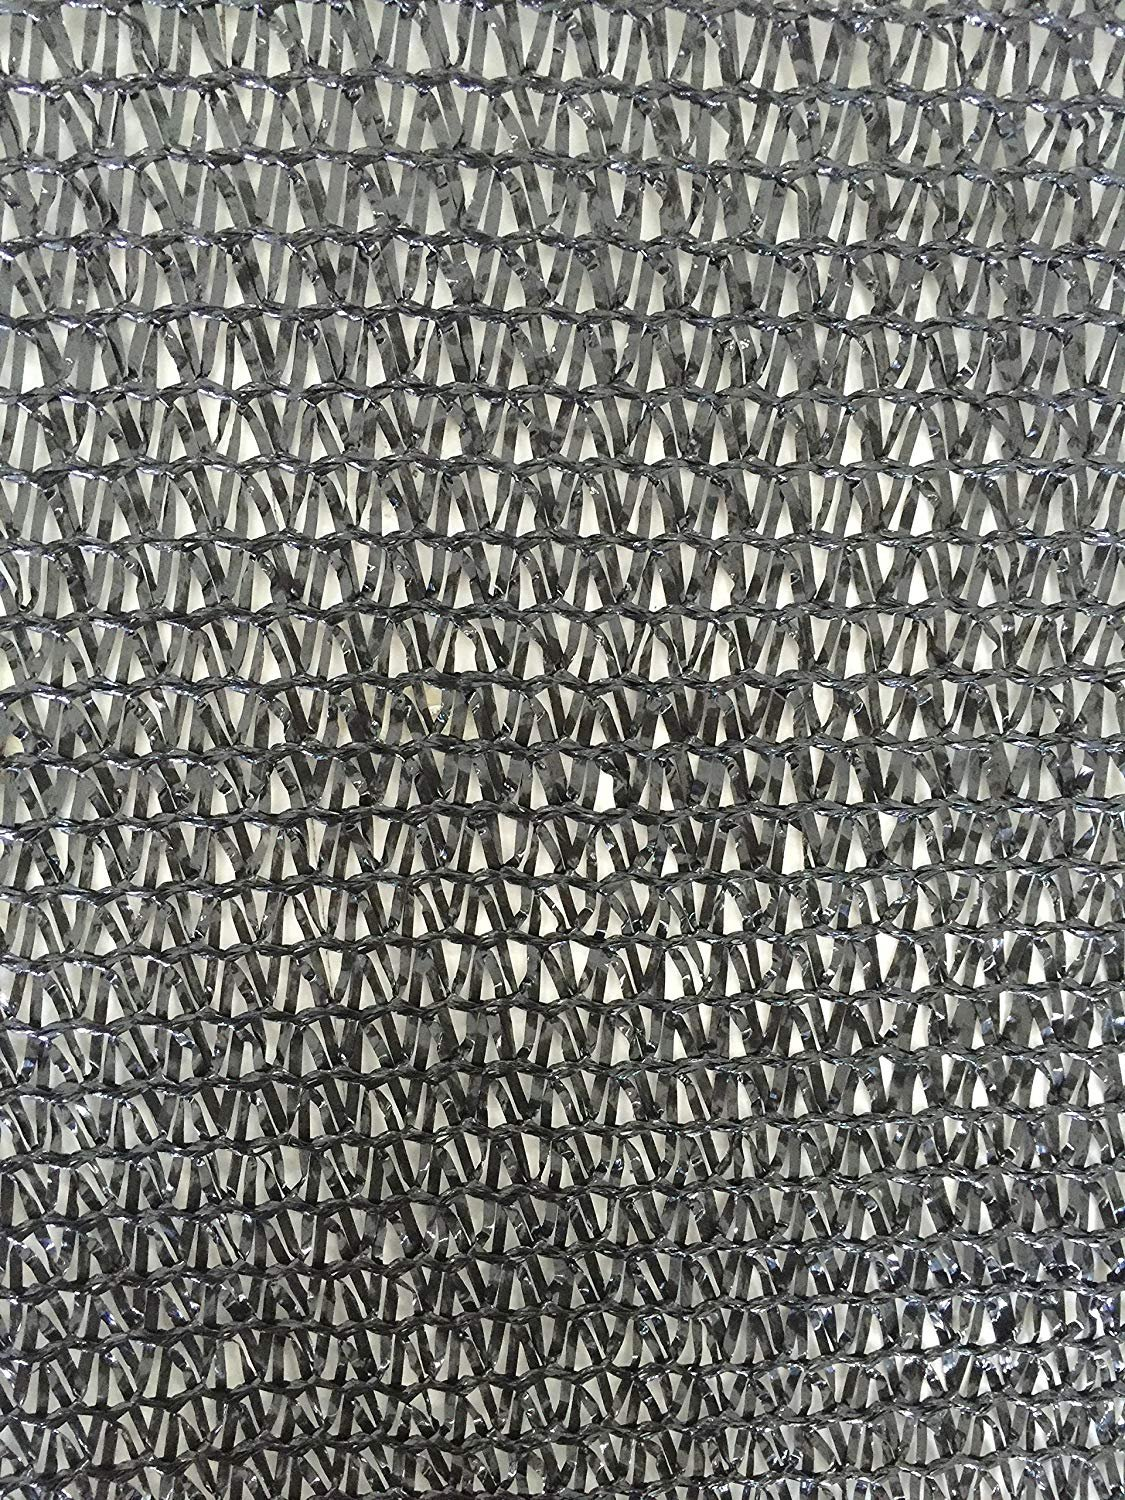 Black 6.5 x 10 Ecover 60/% Shade Cloth Sunblock Fabric Cut Edge with Free Cilps UV Resistant for Garden Plants Cover